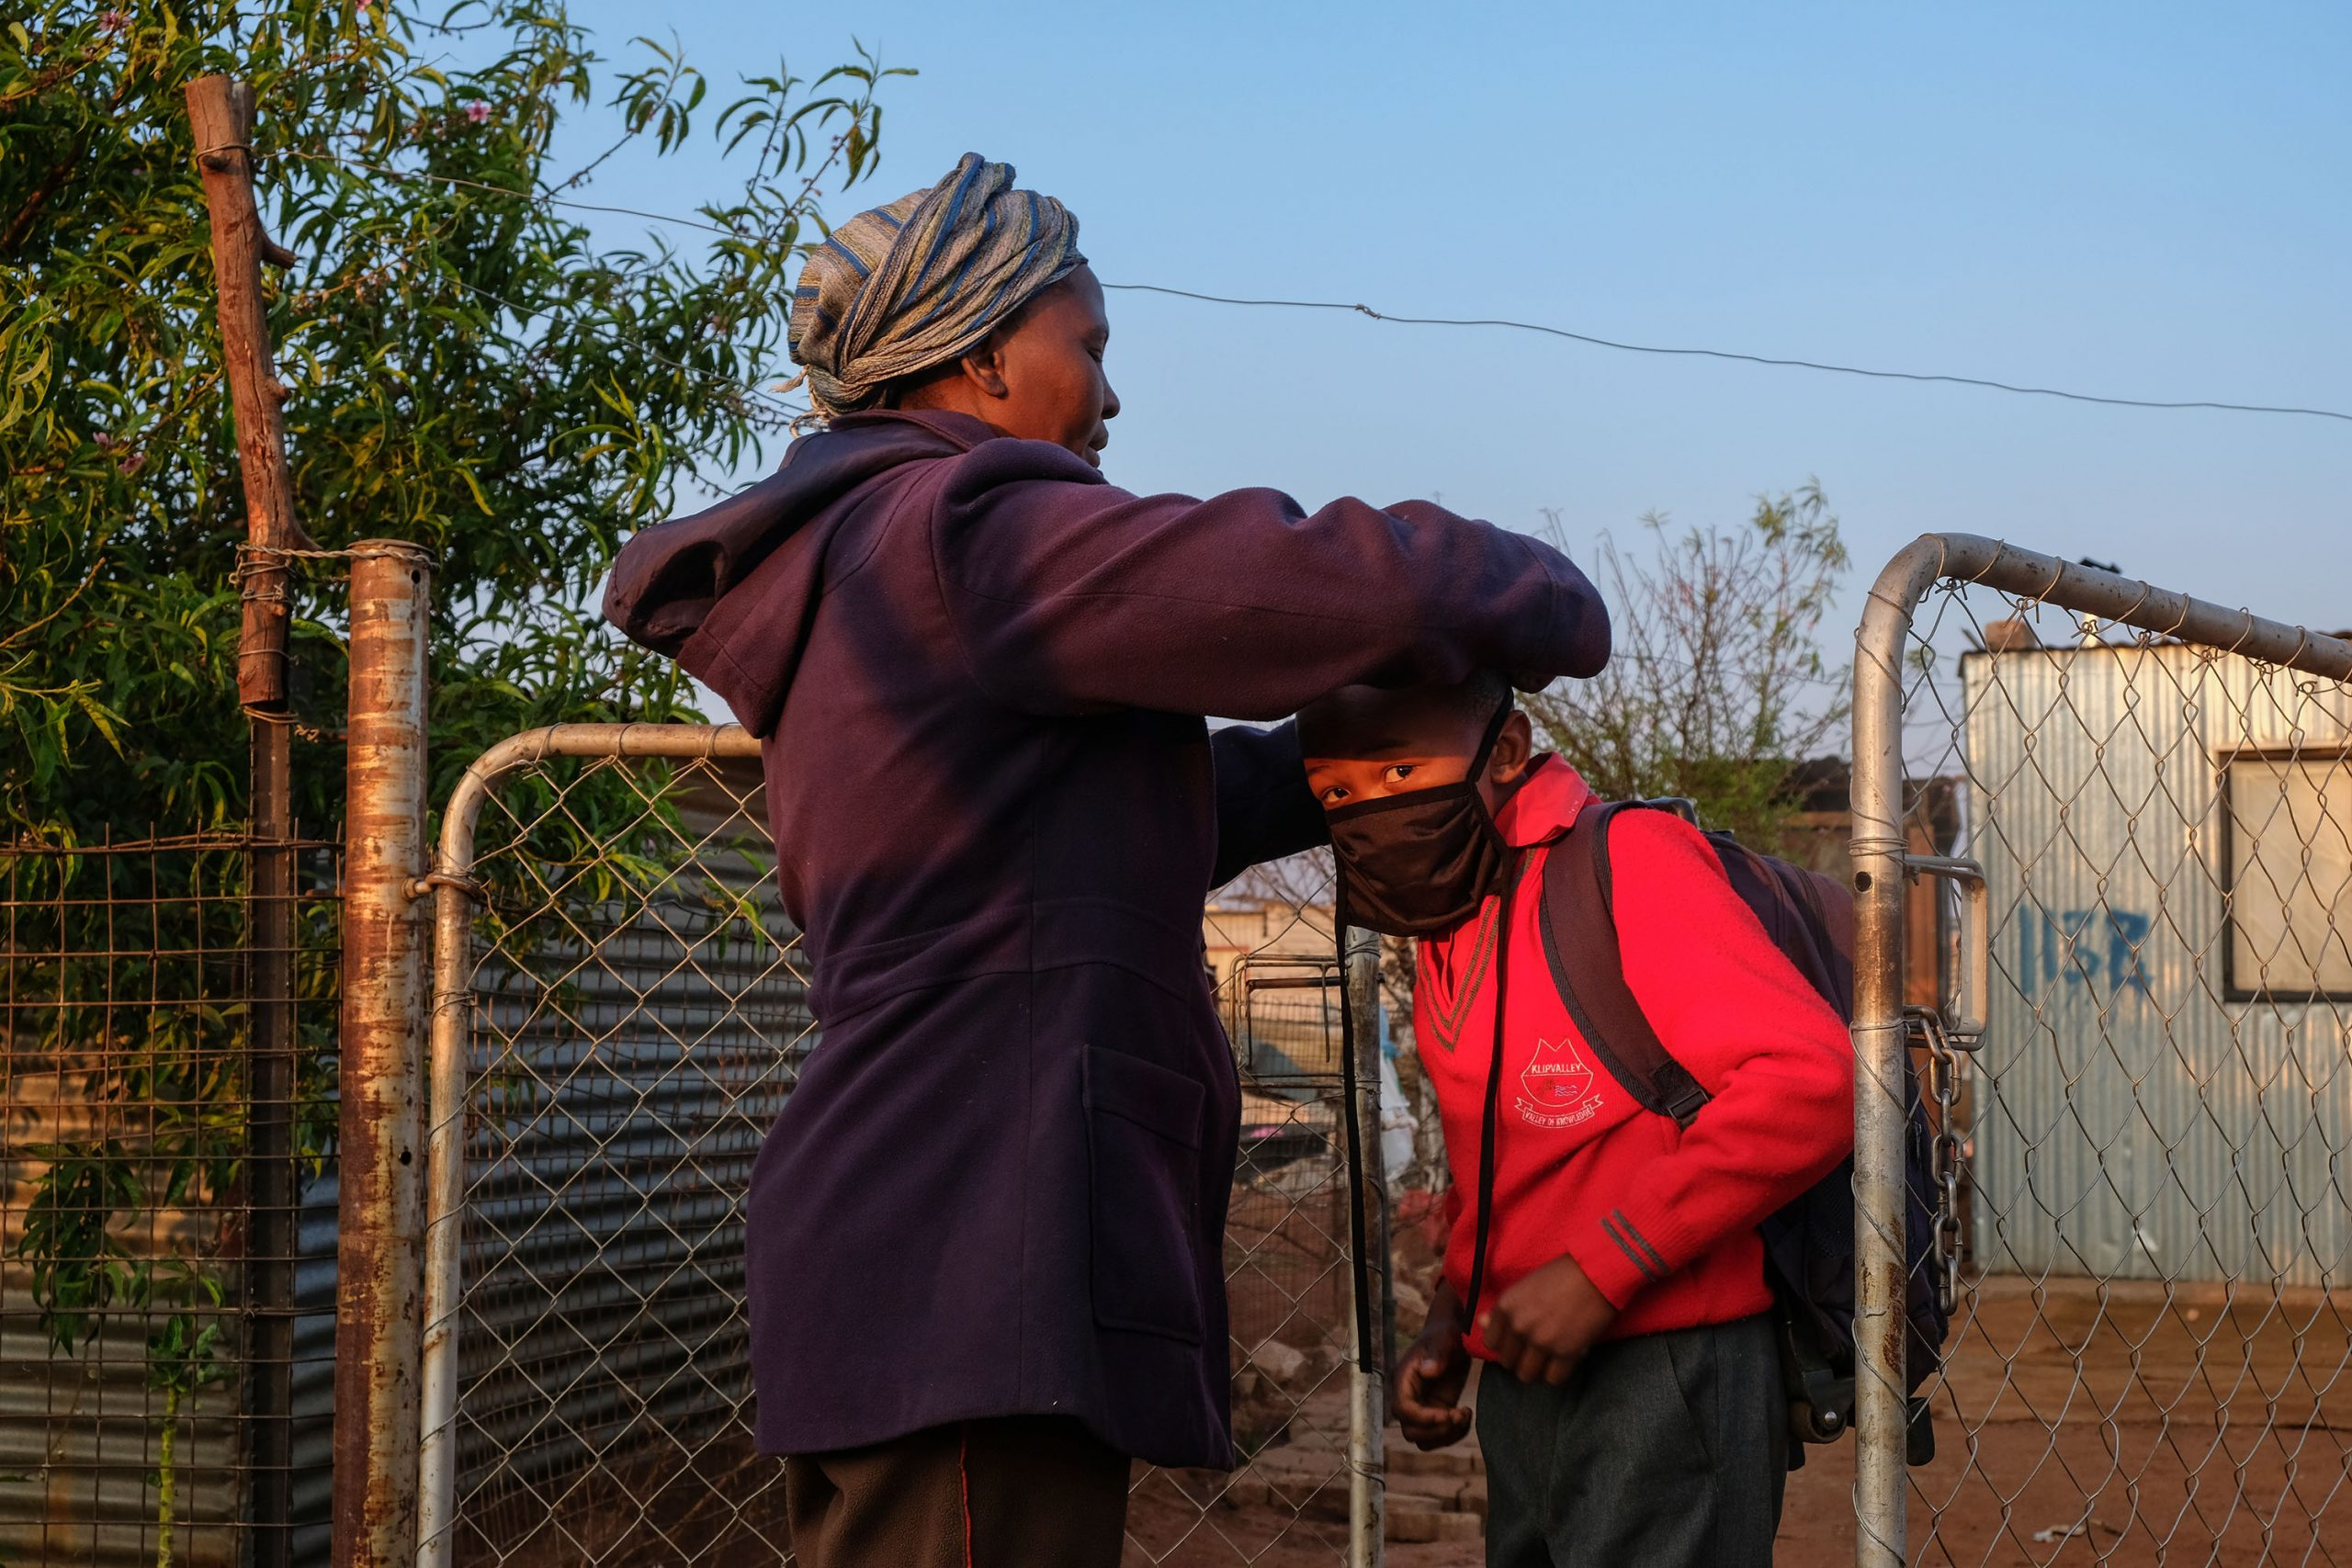 25 August 2020: Tamara Bhengu* takes a break from the protests to get her grandson ready for school. During the Covid-19 lockdown, children's homework was sent on WhatsApp, but without electricity Doornkop residents could not charge their cellphones.